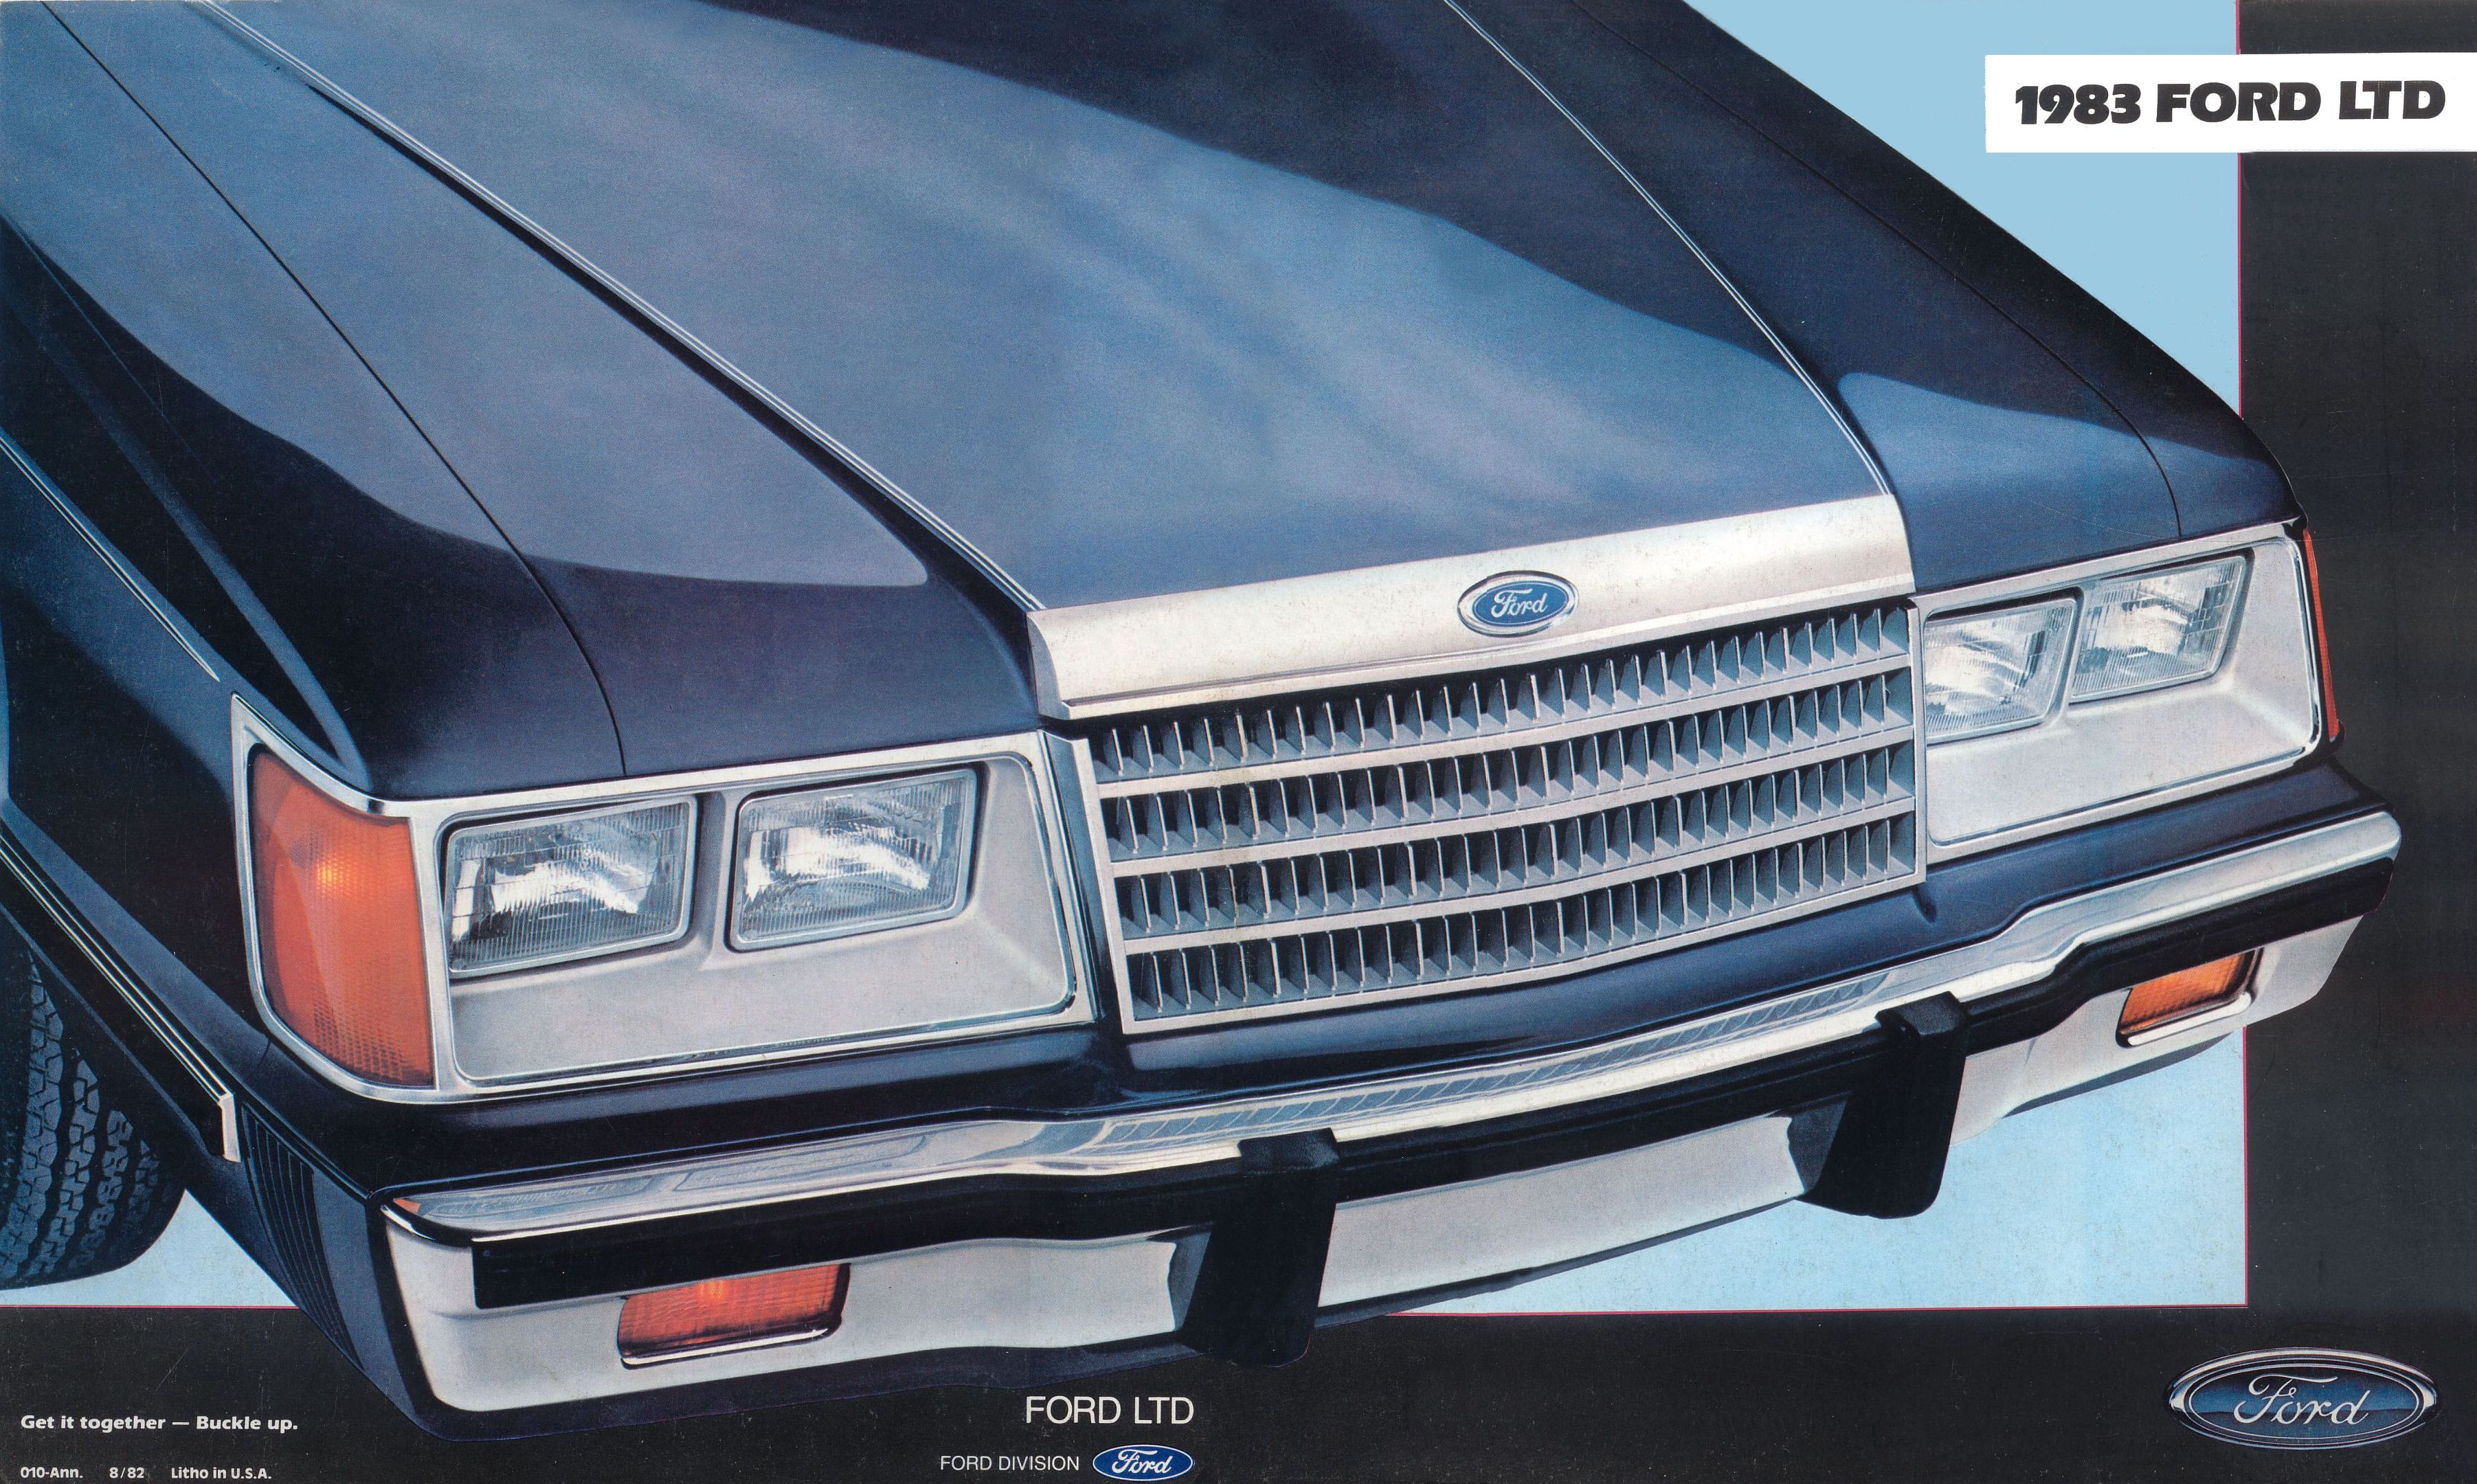 Fordltd1983 as well Actpoder furthermore Evaporator Chevrolet besides Diverse as well Fordtaunus17m1957. on ford